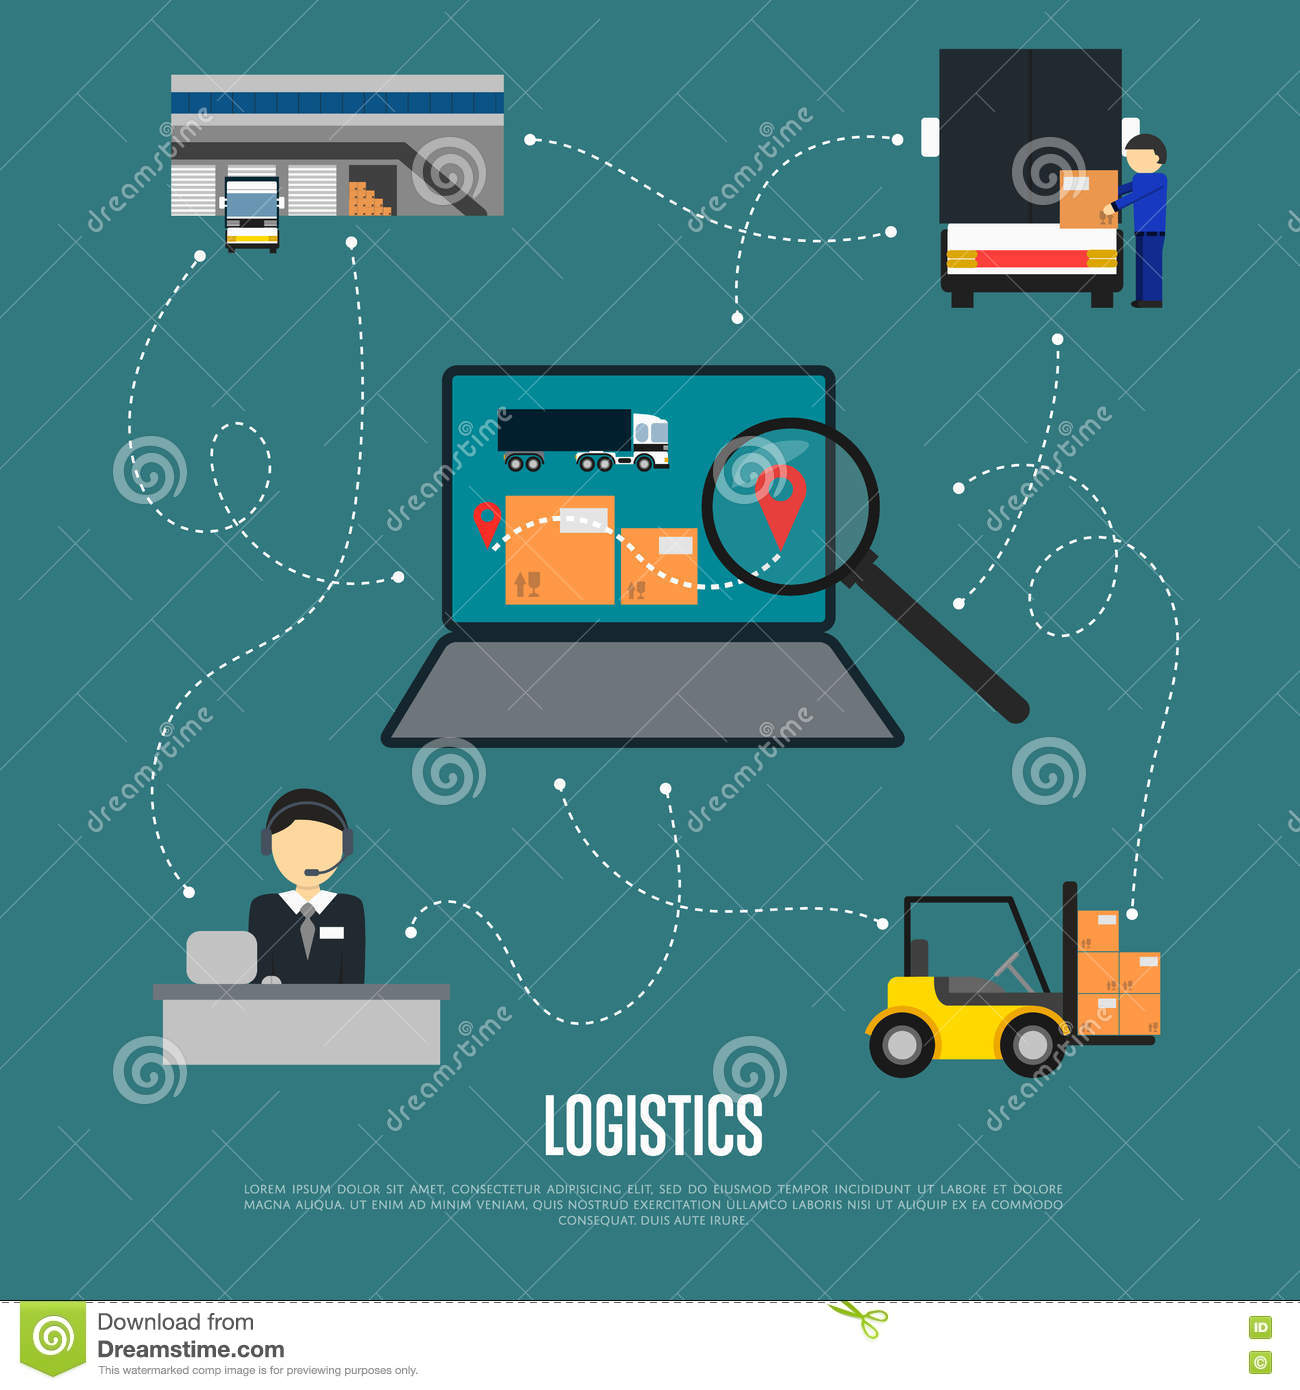 Logistics and freight shipment flowchart